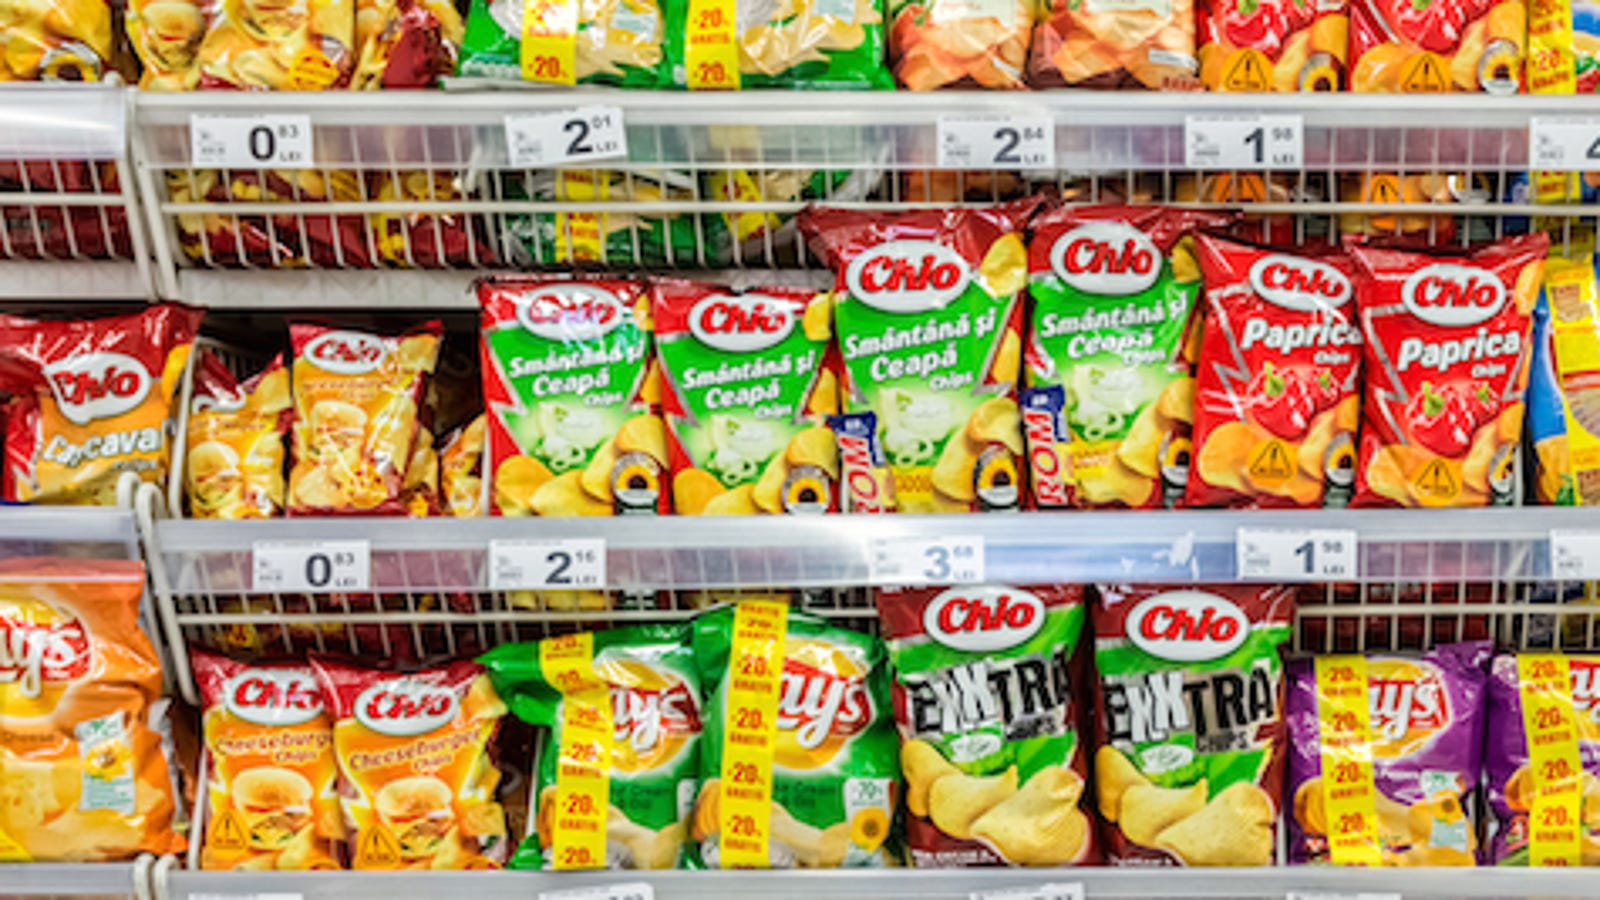 Navajo Nation Makes Great Decision to Tax Junk Food, We Should Follow